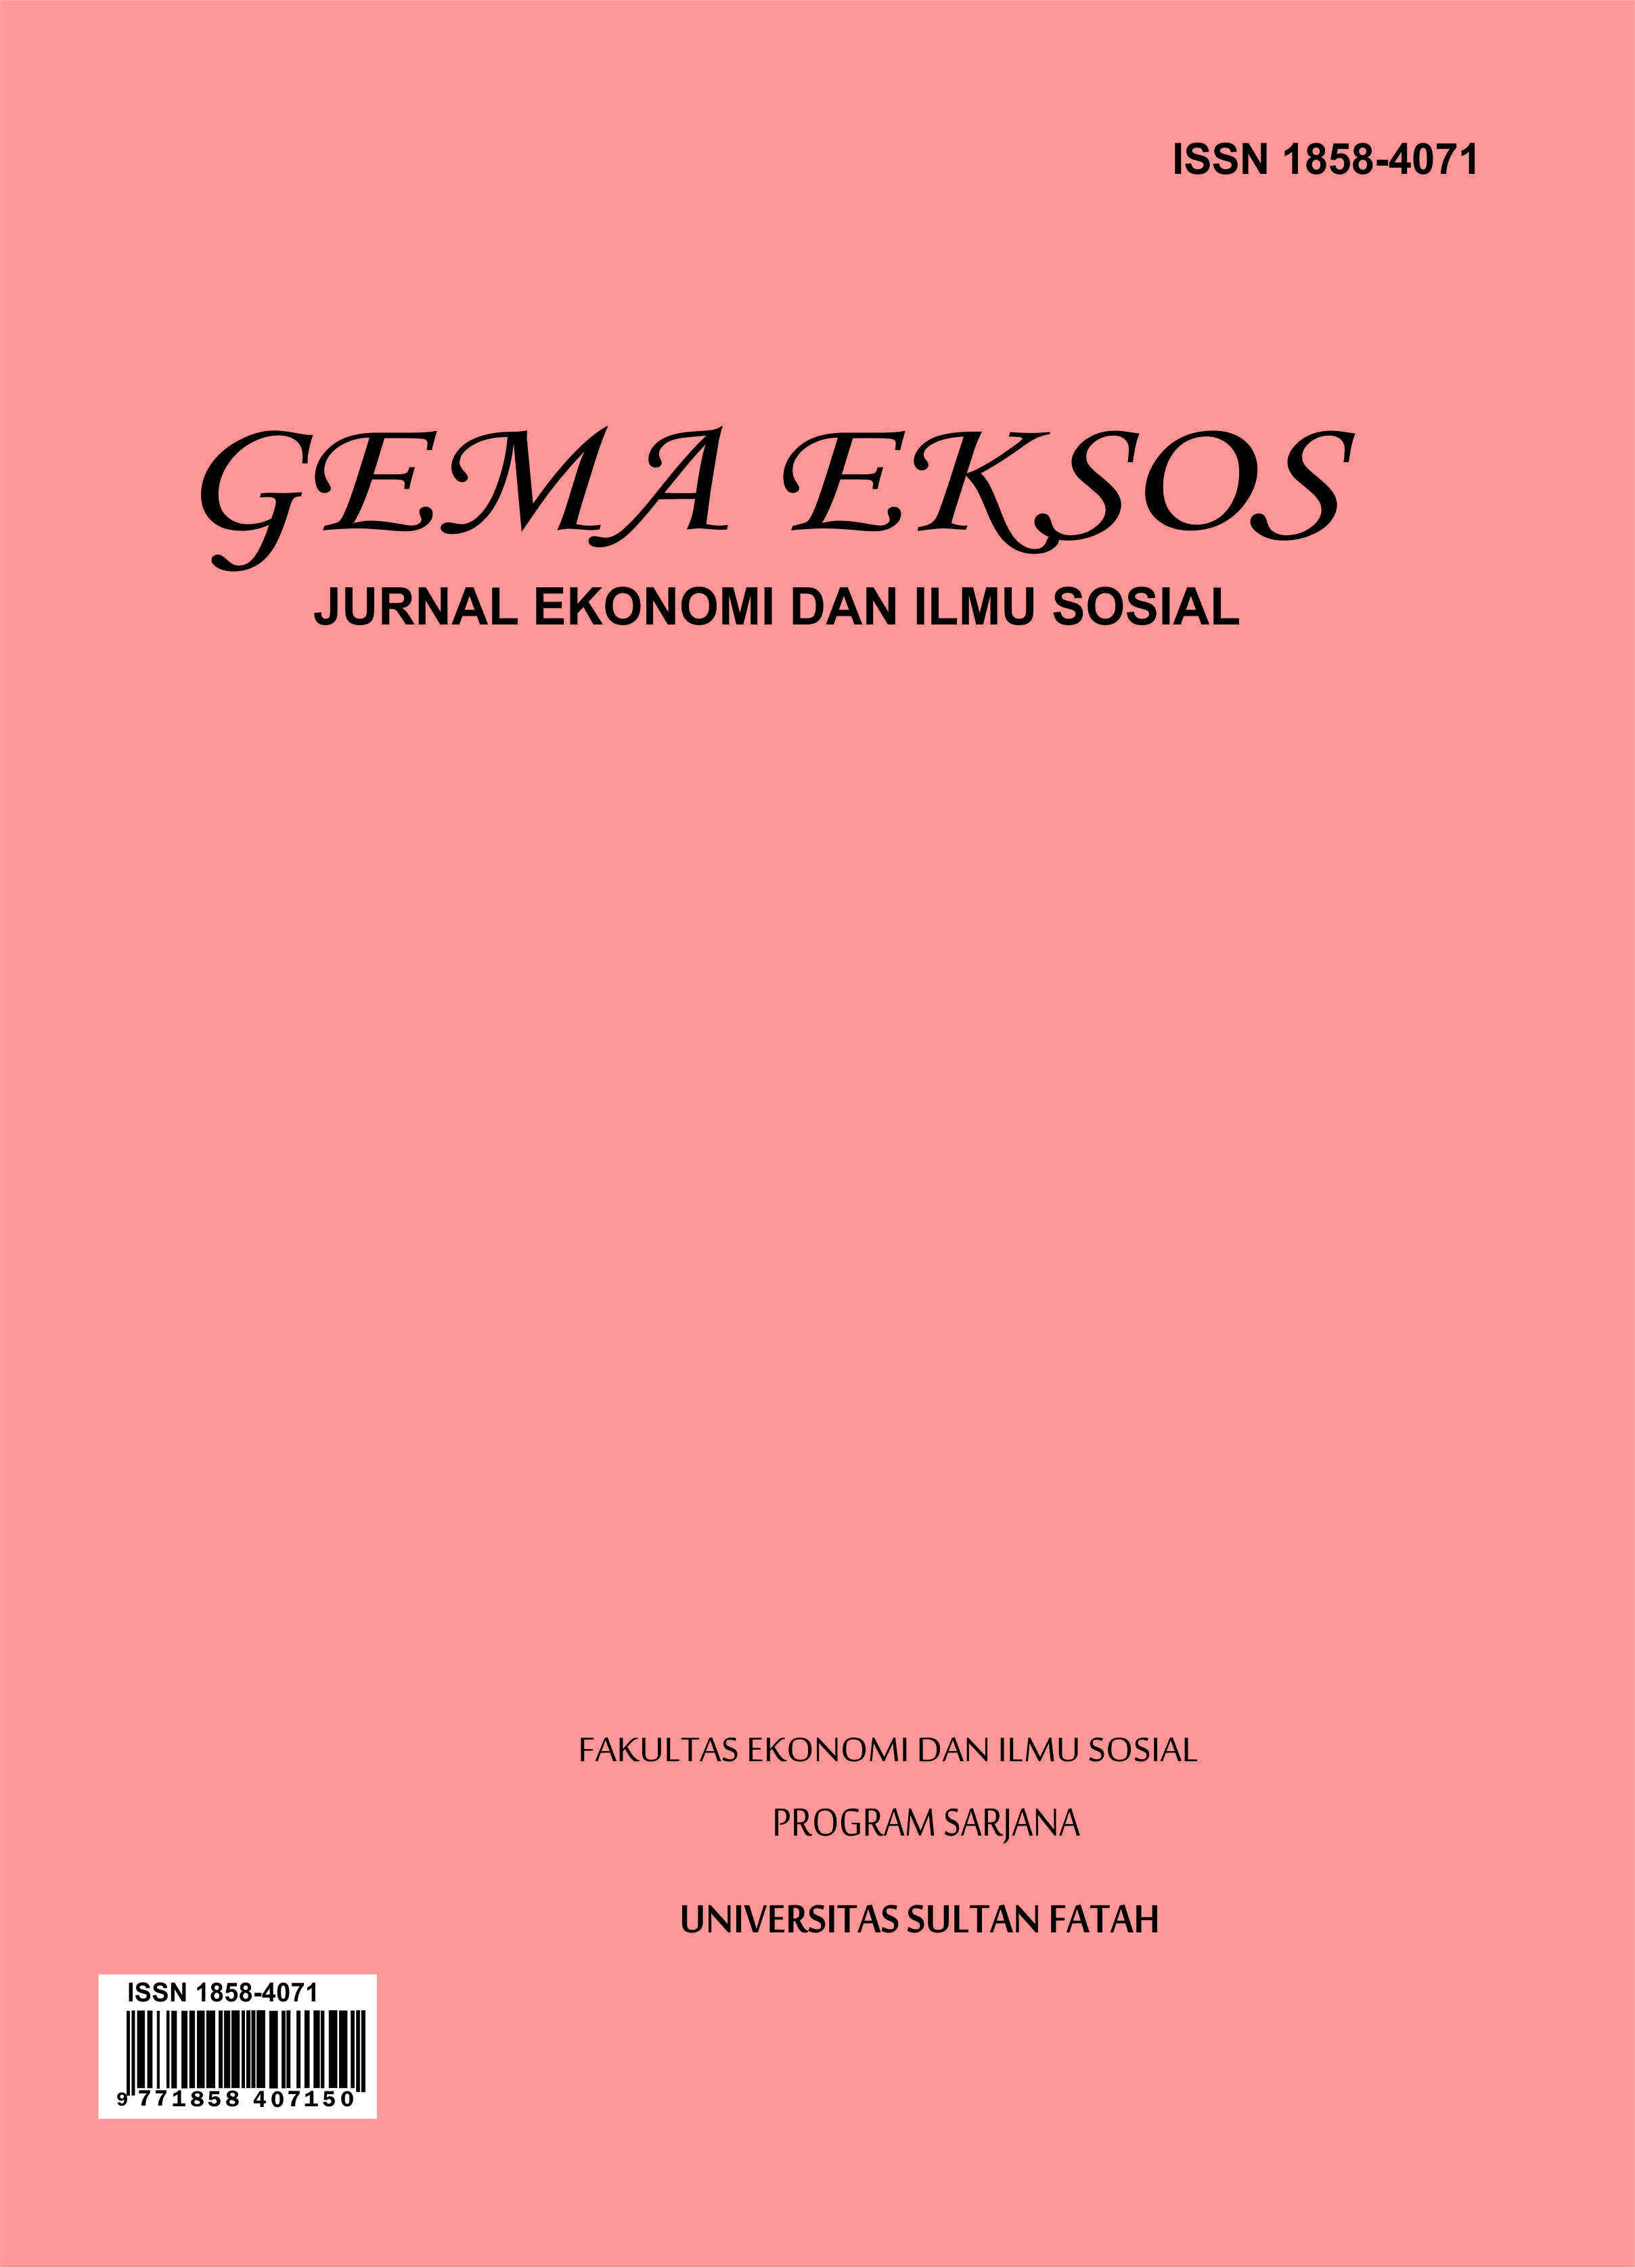 Cover Jurnal Gema Eksos